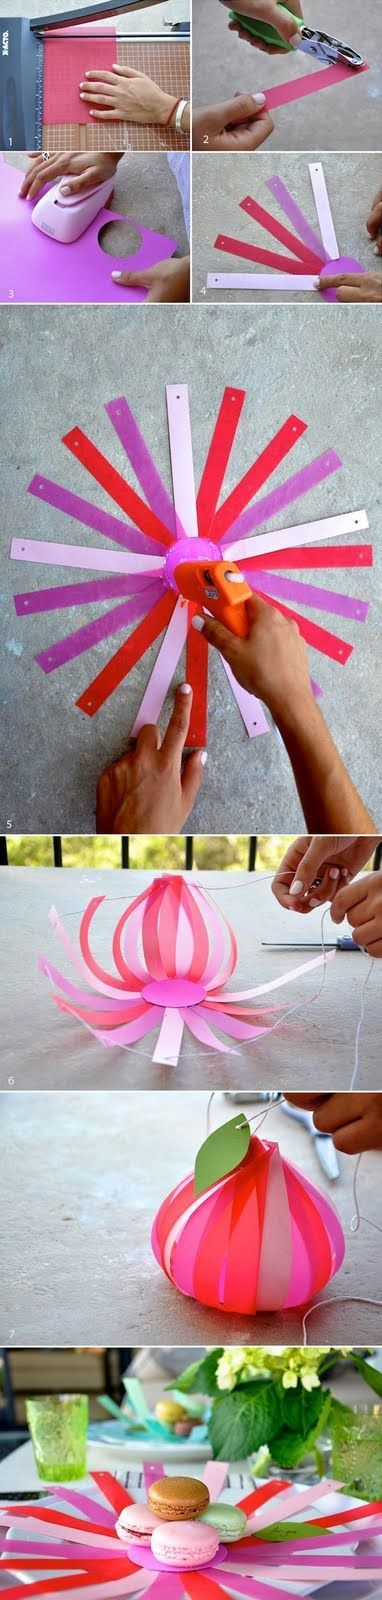 cool gift-wrapping idea for #Gift Wrapping #Gift Wrapper #Gift Wrap  http://gift-wrapper.lemoncoin.org